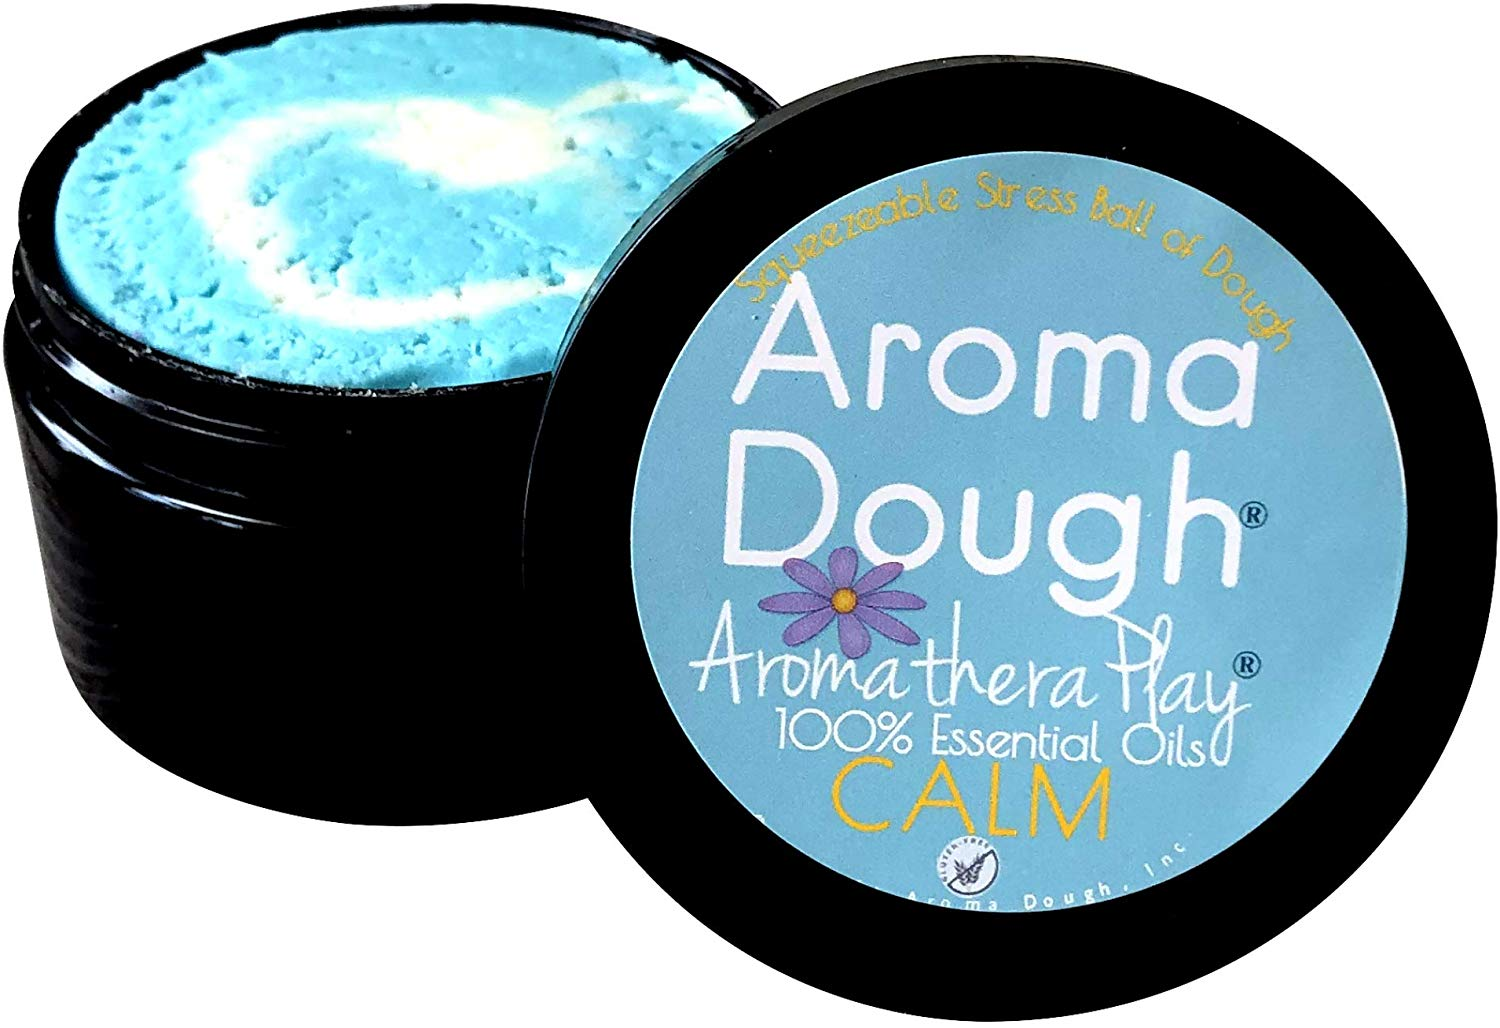 Aroma Dough Sleepytime Lavender Aromatherapy Play Dough Gluten-Free Non-Allergenic Natural Playdough Play Therapy Tools Helps Promote Sleep Sensory Room Equipment